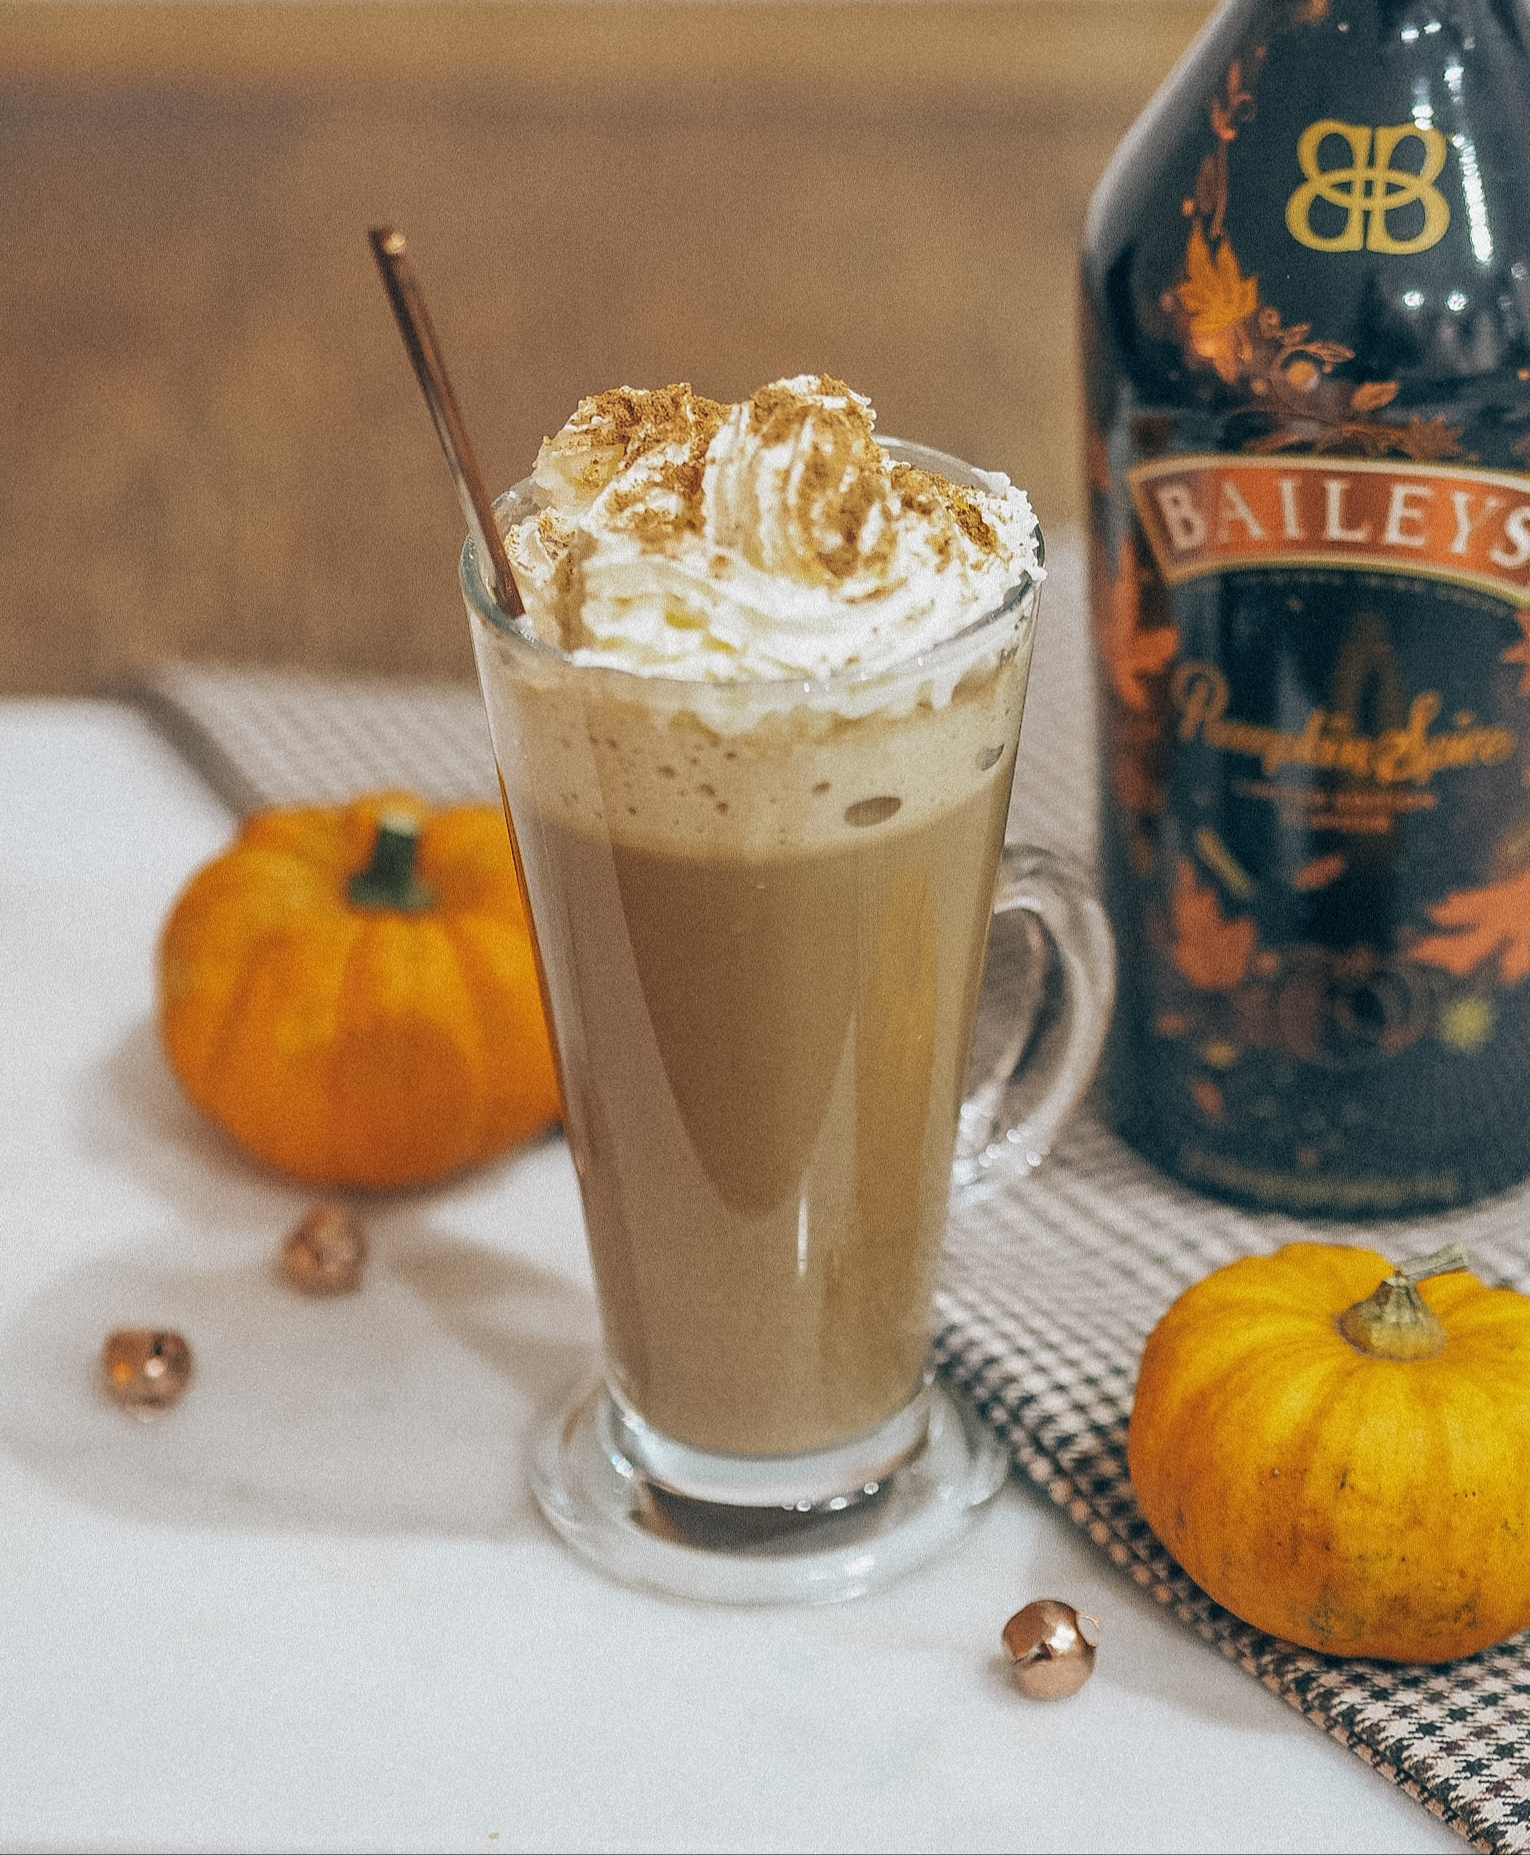 Baileys Pumpkin Spiced Latte